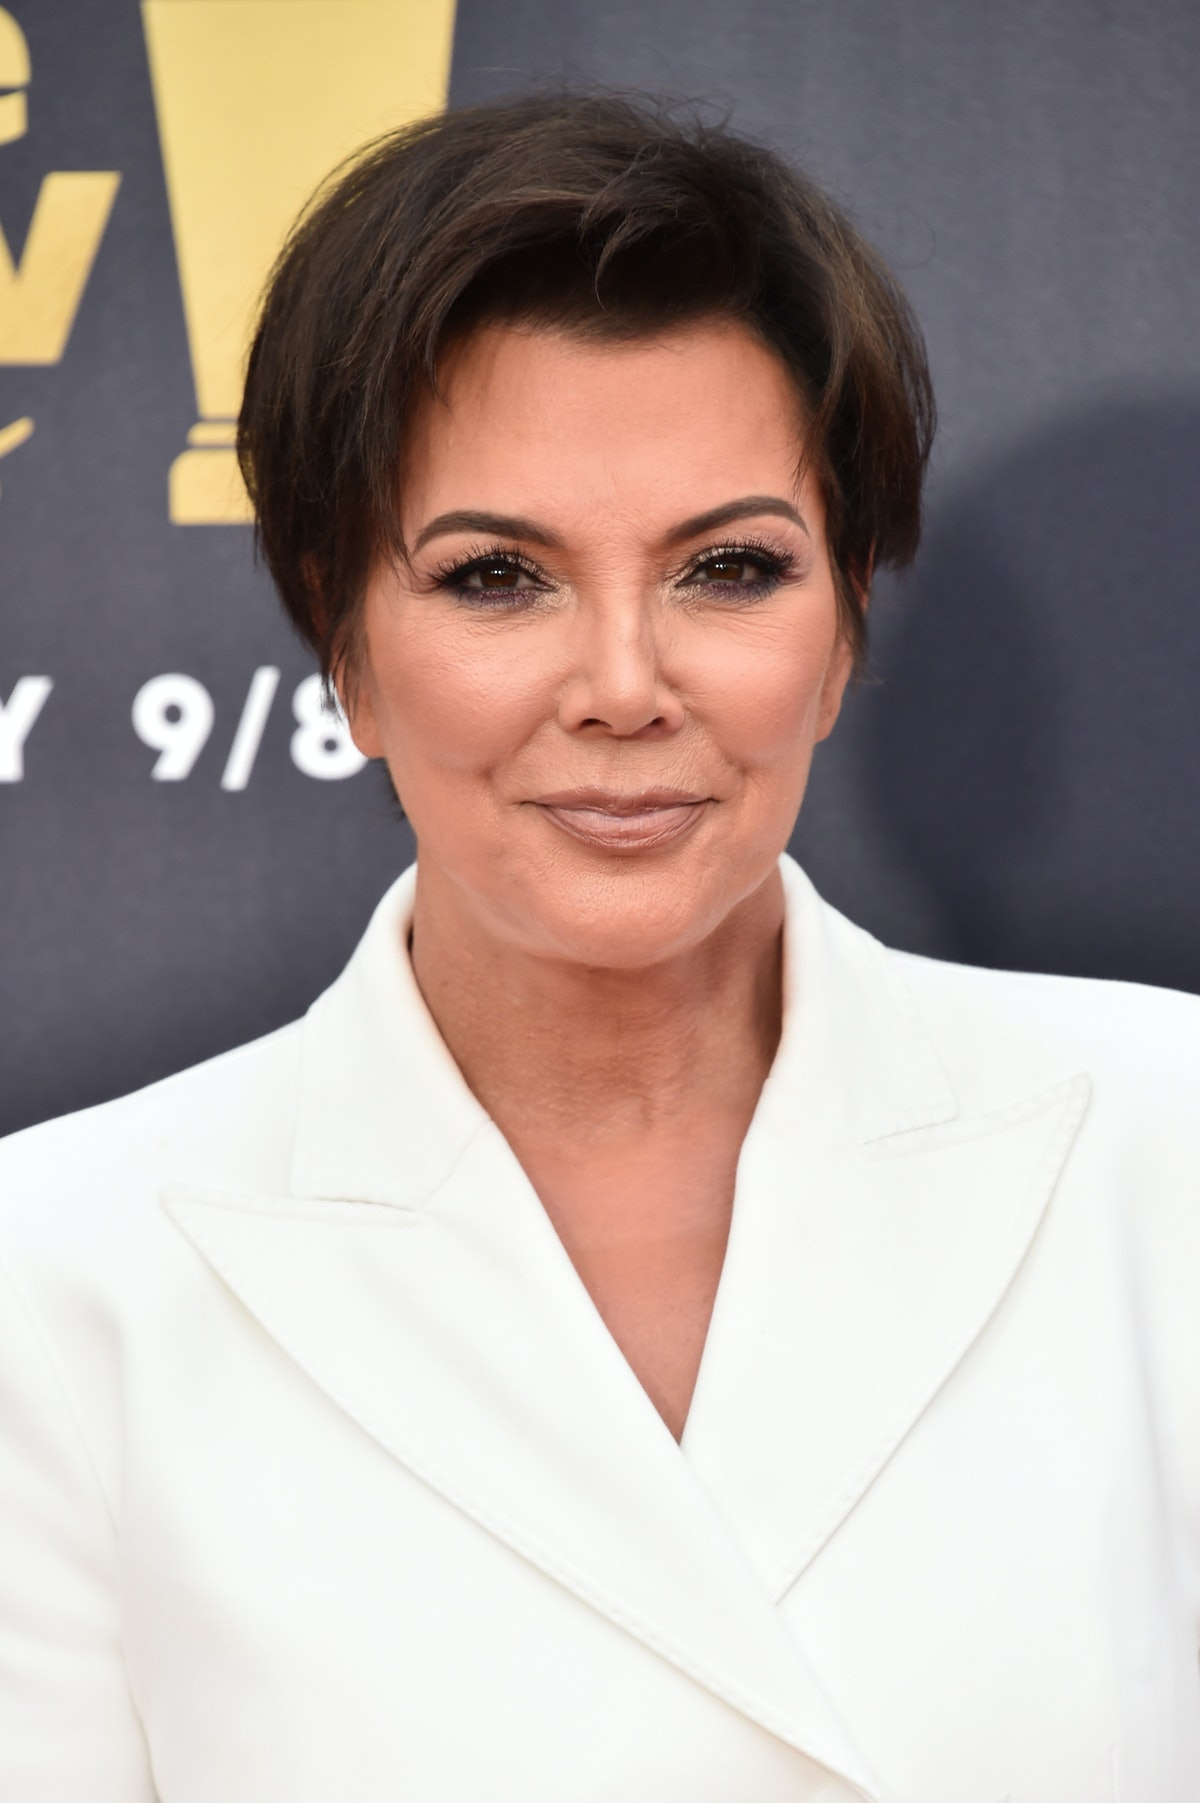 Kris Jenner's Comments On Saint West's Emergency Room Visit Show Another Side Of Parenthood